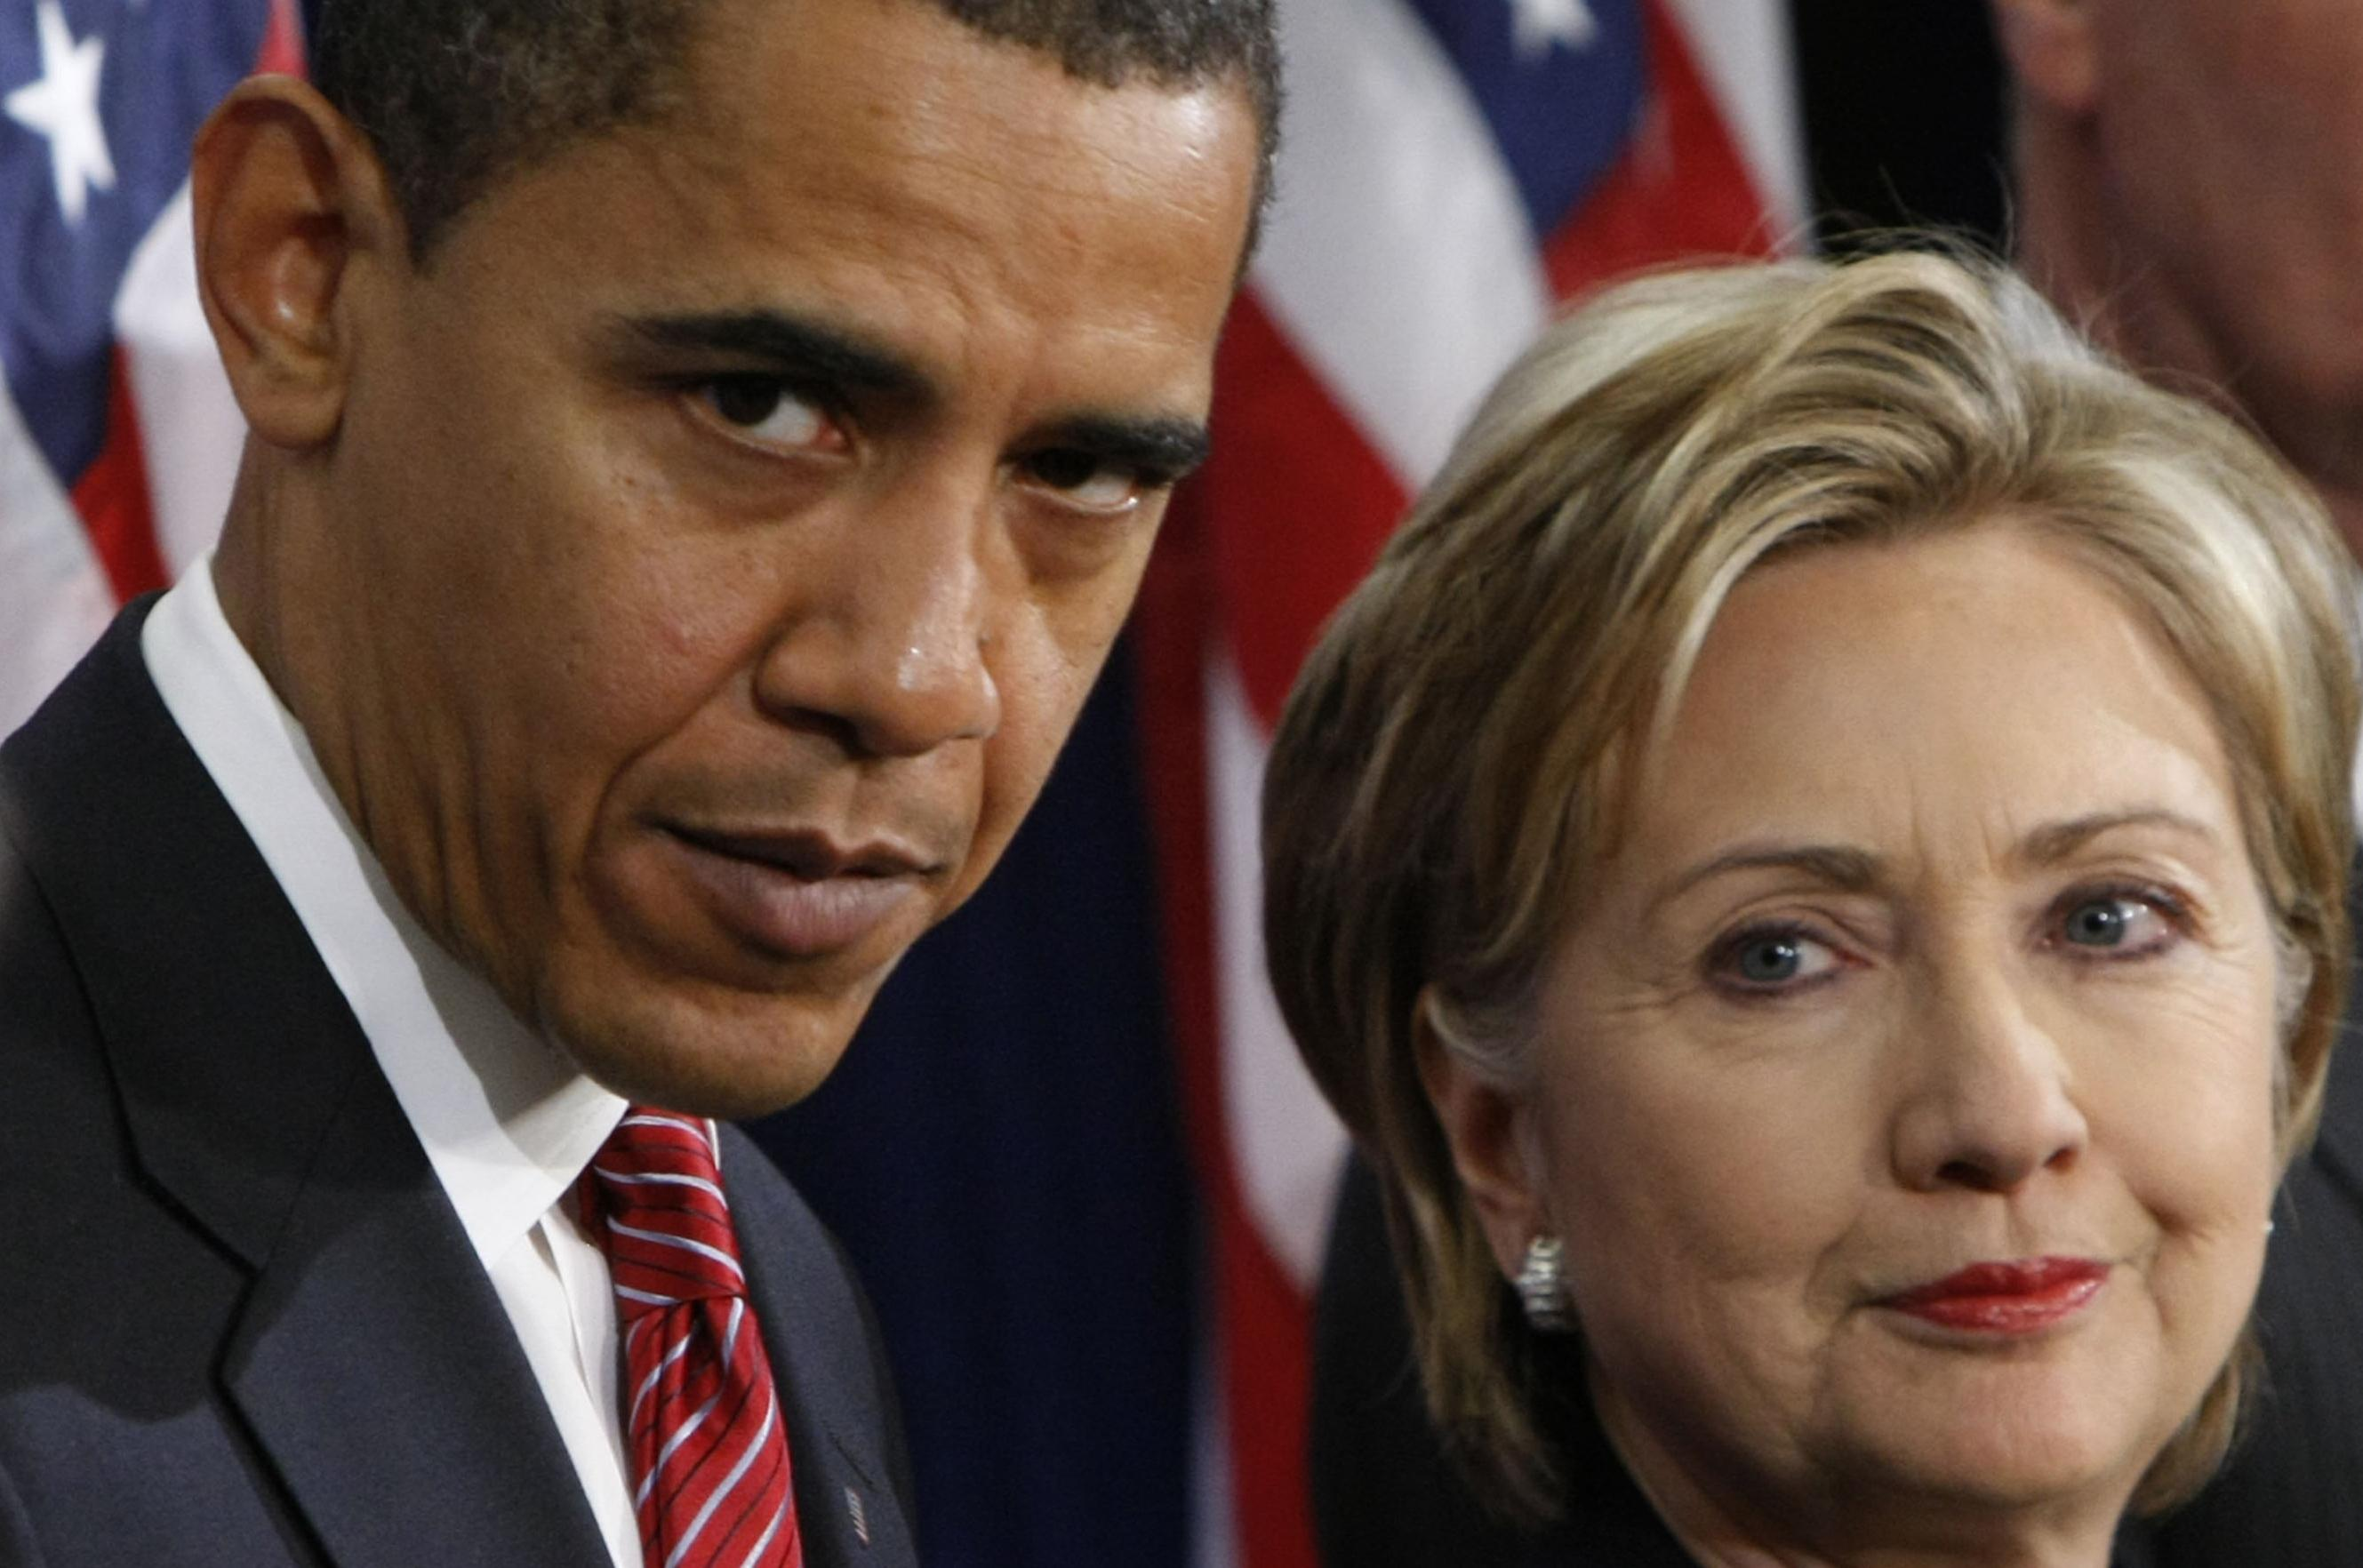 President Obama Backs Clinton Nudges Sanders